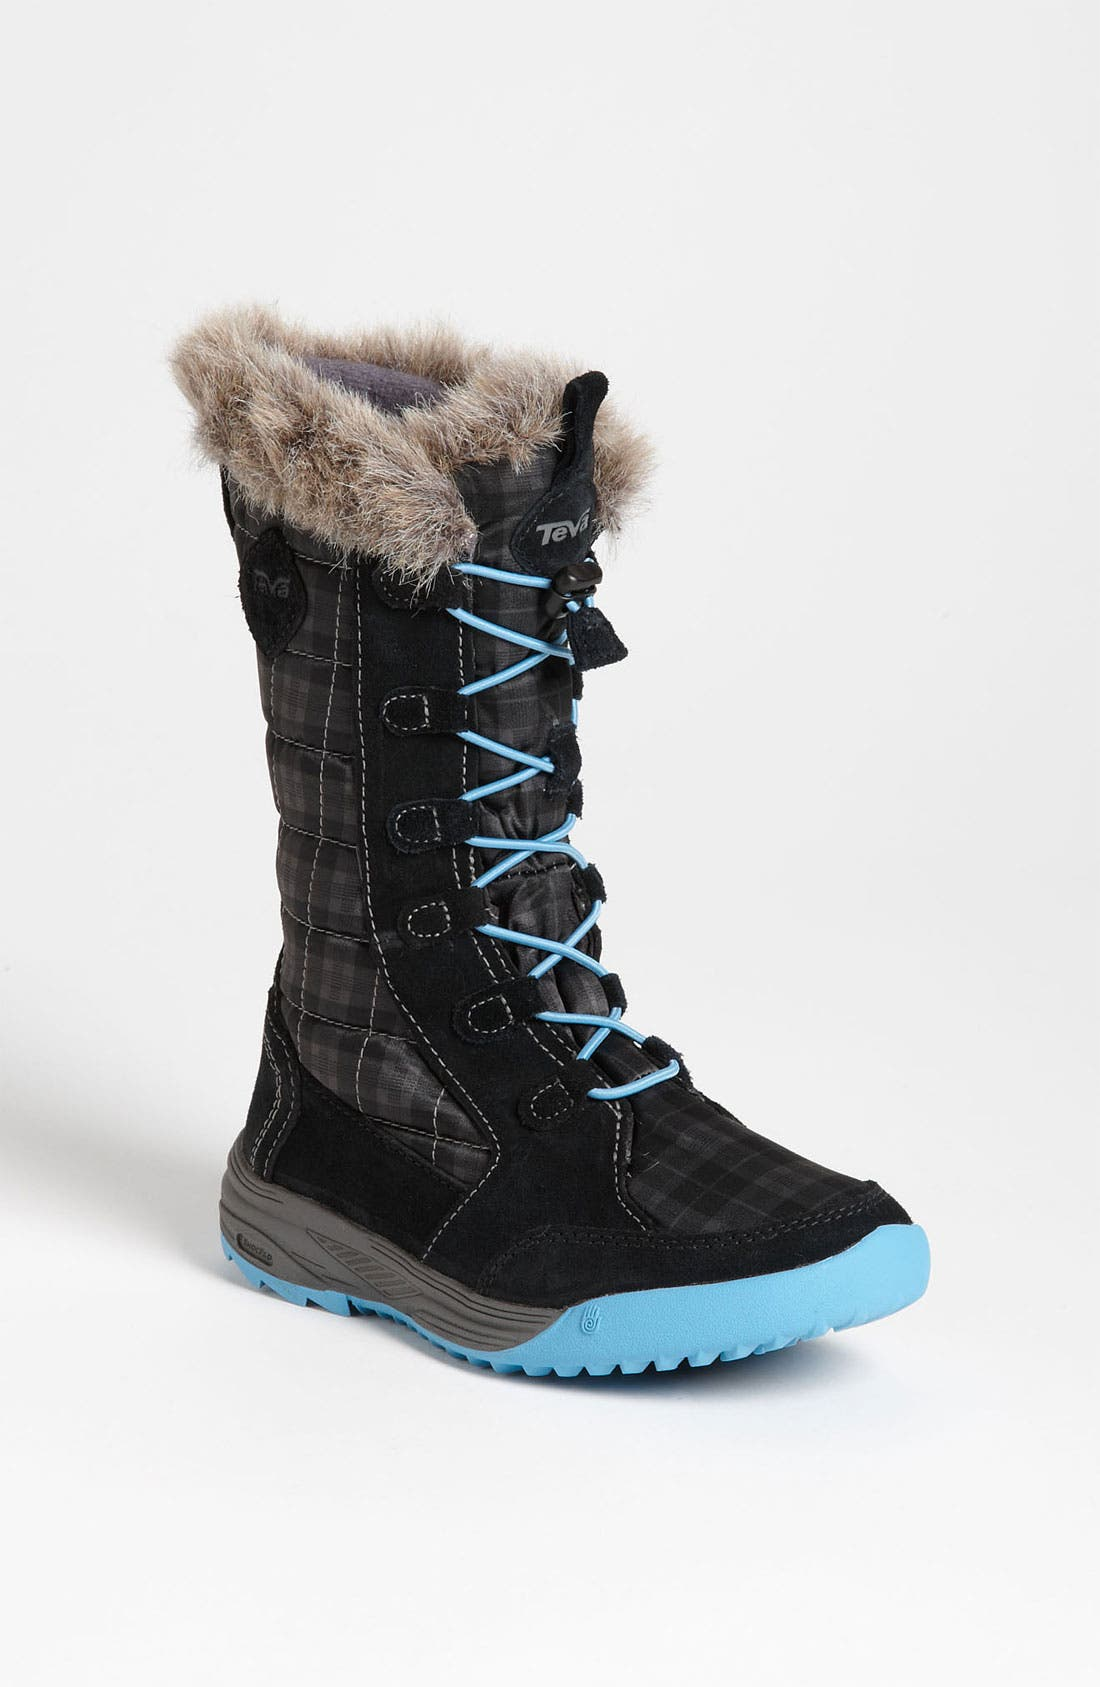 Alternate Image 1 Selected - Teva 'Lenawee' Waterproof Boot (Toddler, Little Kid & Big Kid)